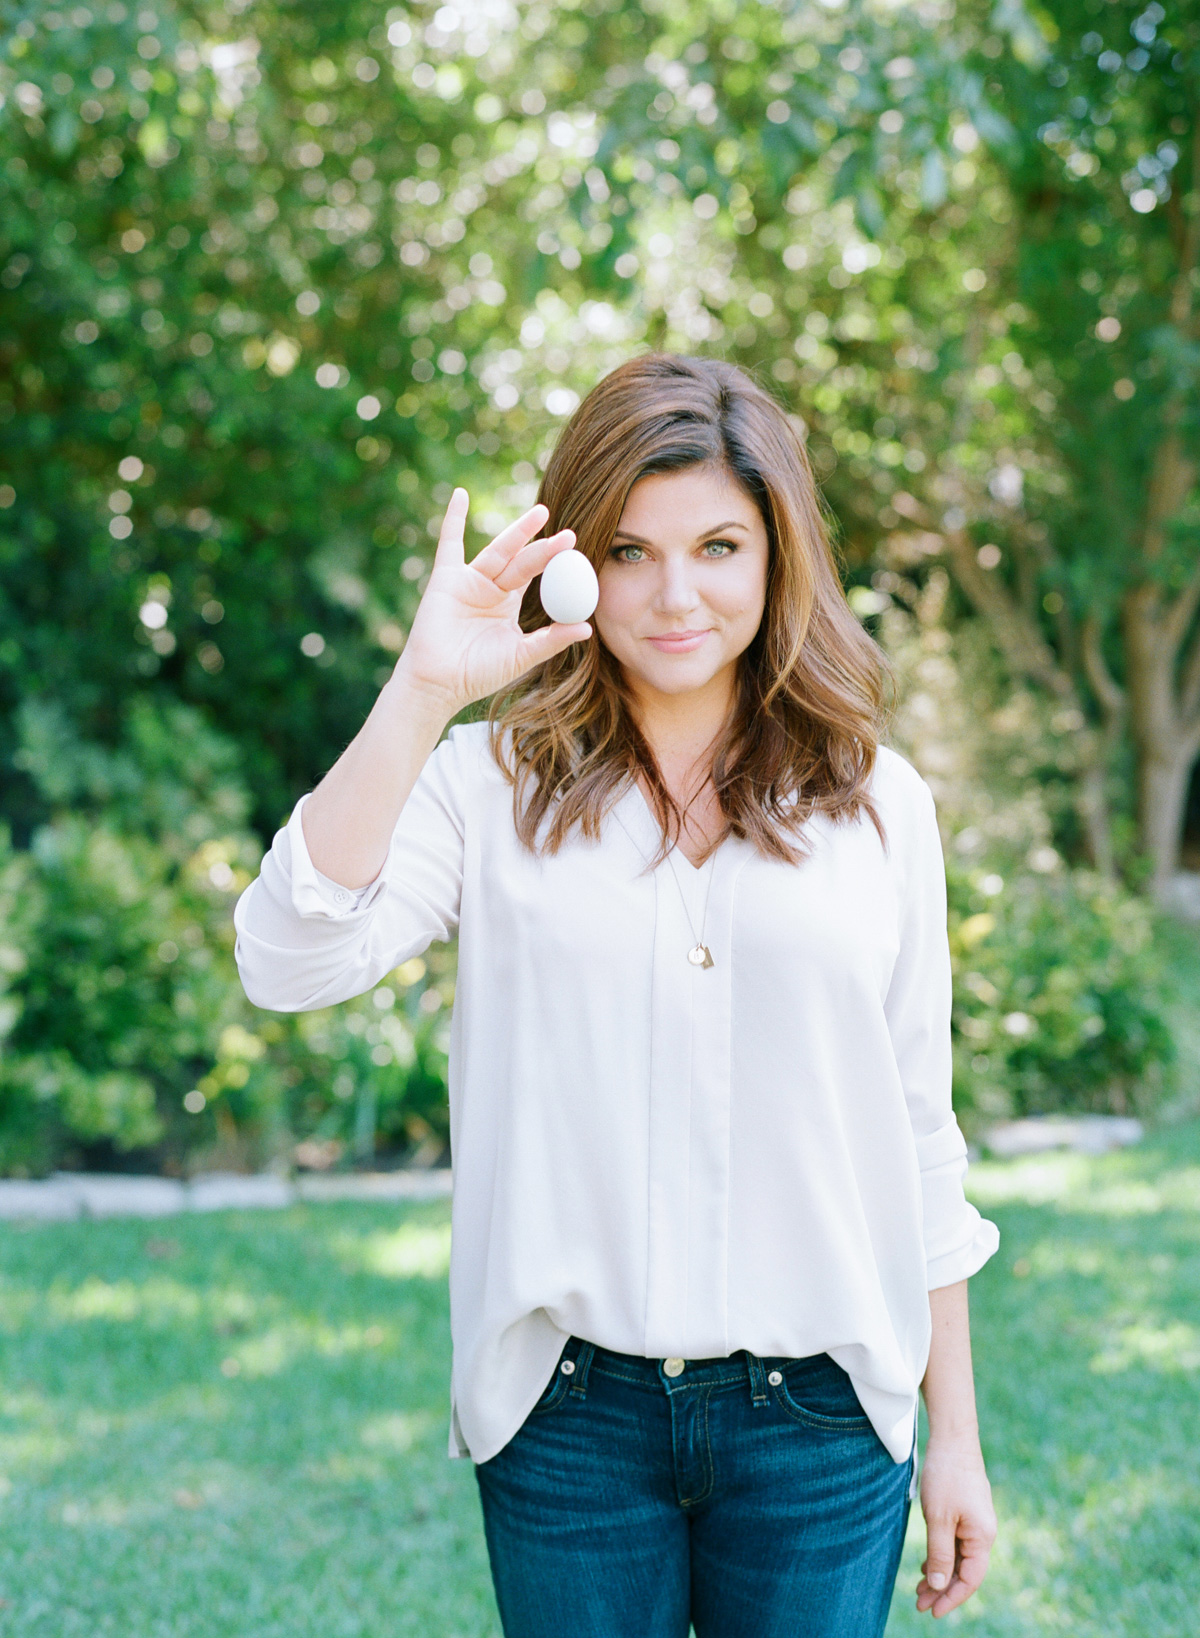 61 Sexiest Tiffani Thiessen Boobs Pictures Will Make You